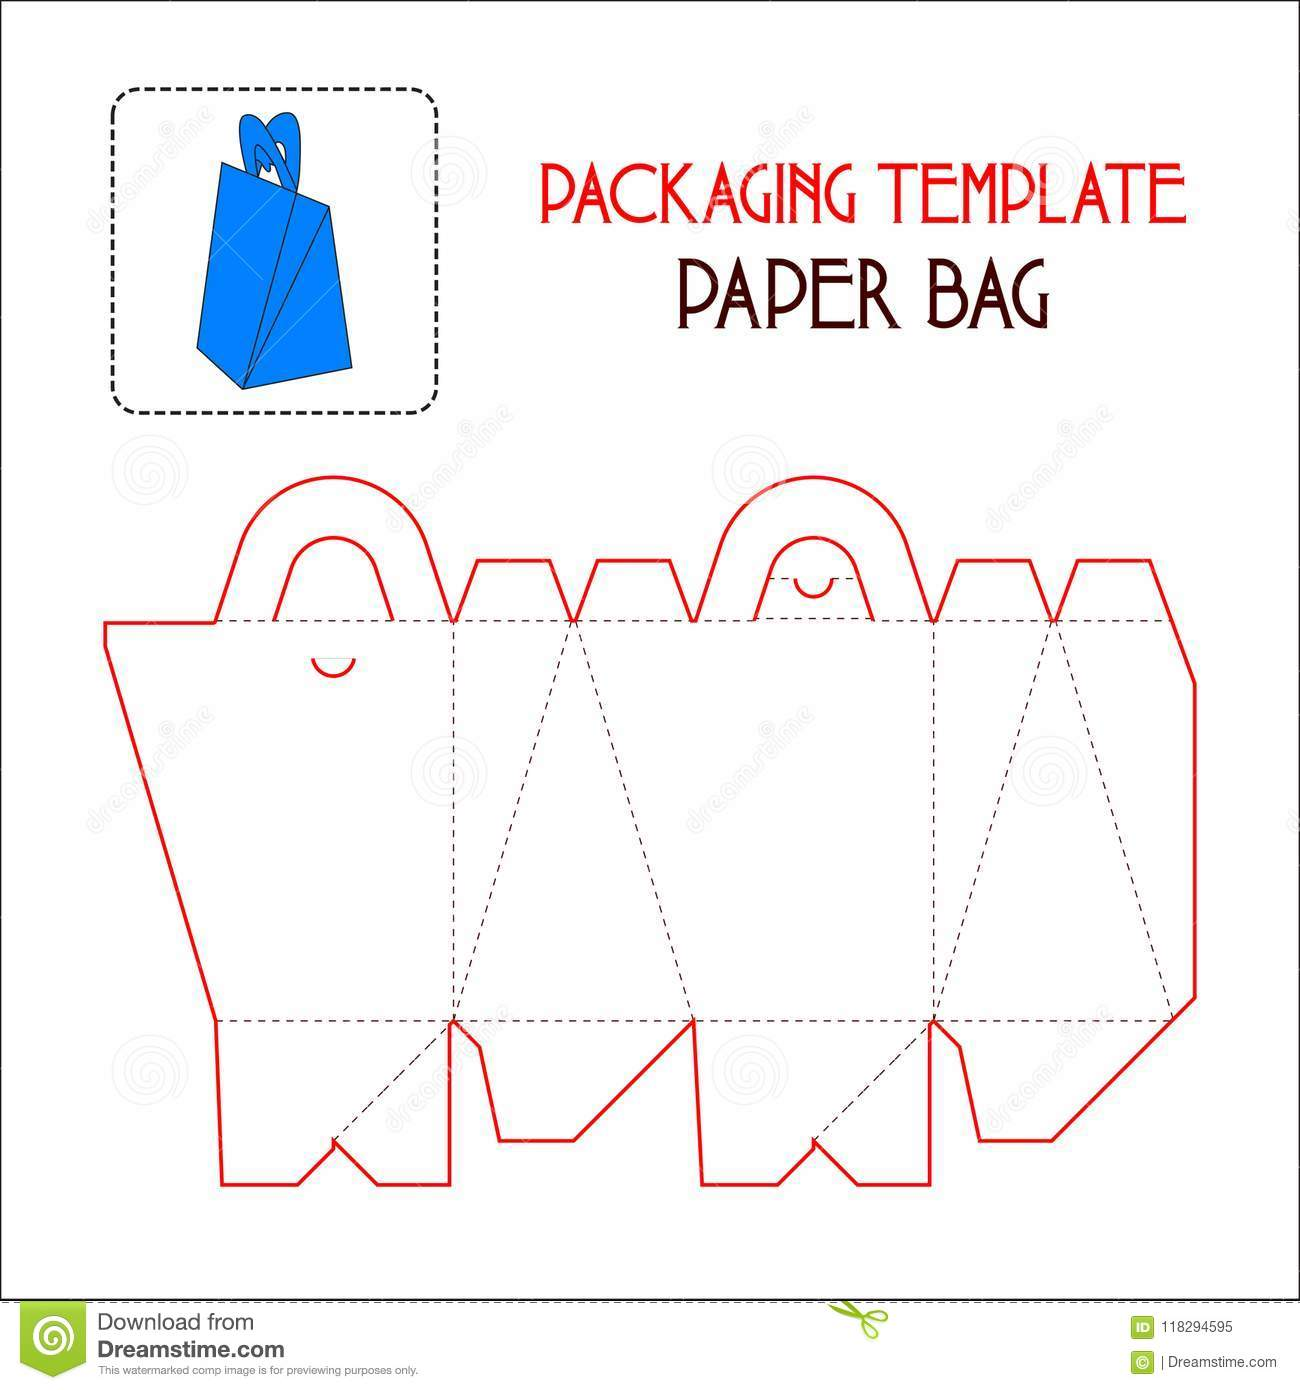 paper bag packaging template stock vector illustration of handraw